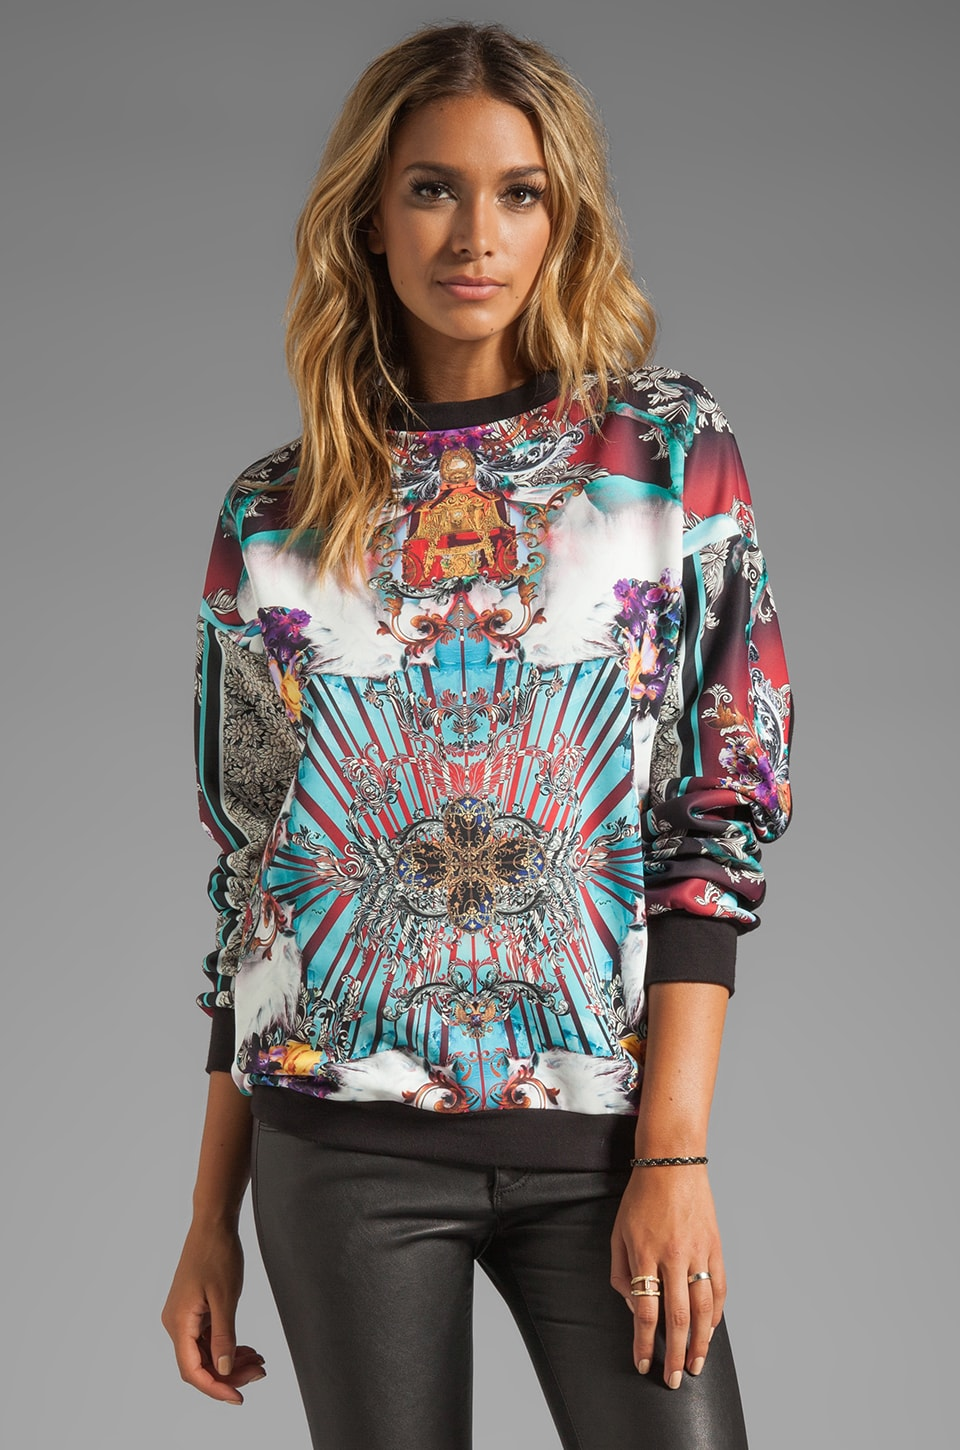 Clover Canyon Royal Horses Sweatshirt in Multi